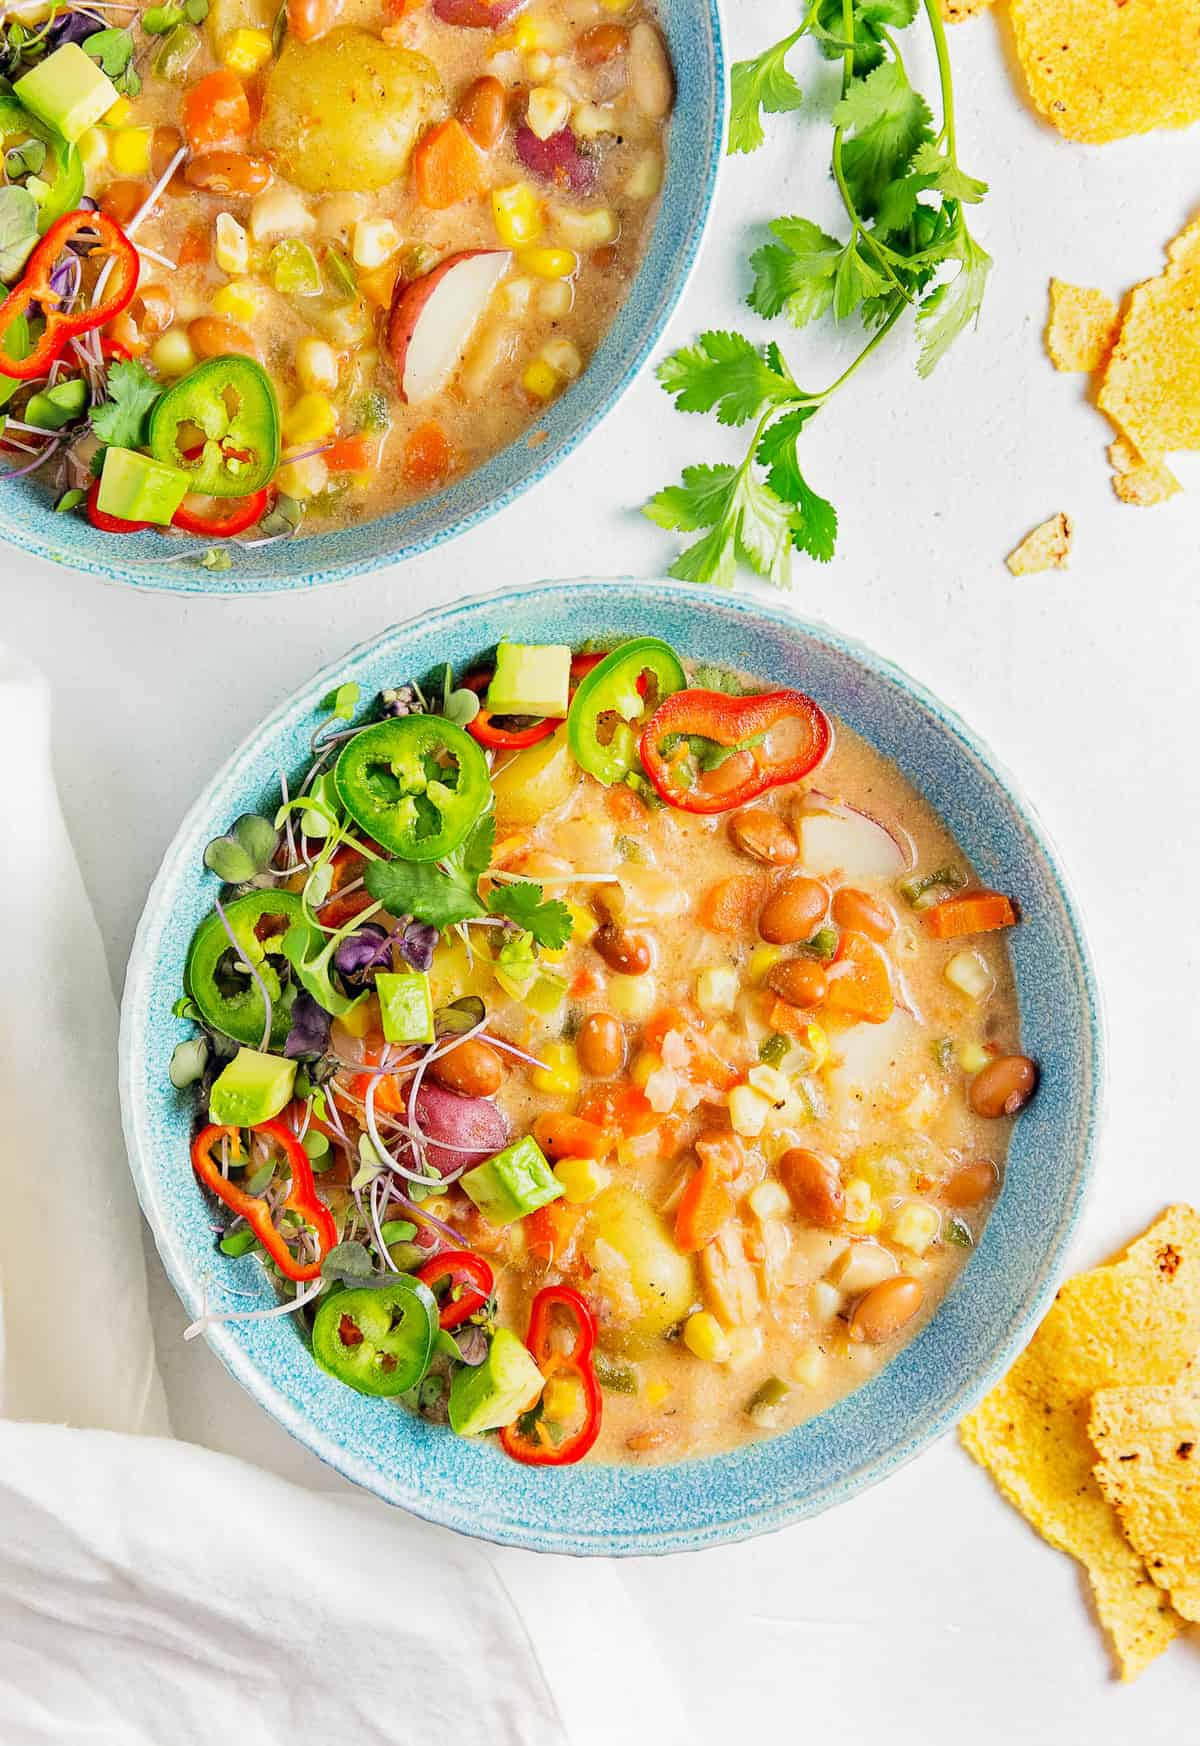 Creamy Southwestern Soup, plant based, vegan, vegetarian, whole food plant based, gluten free, recipe, wfpb, healthy, healthy vegan, oil free, no refined sugar, no oil, refined sugar free, dairy free, dinner party, entertaining, soup, stew